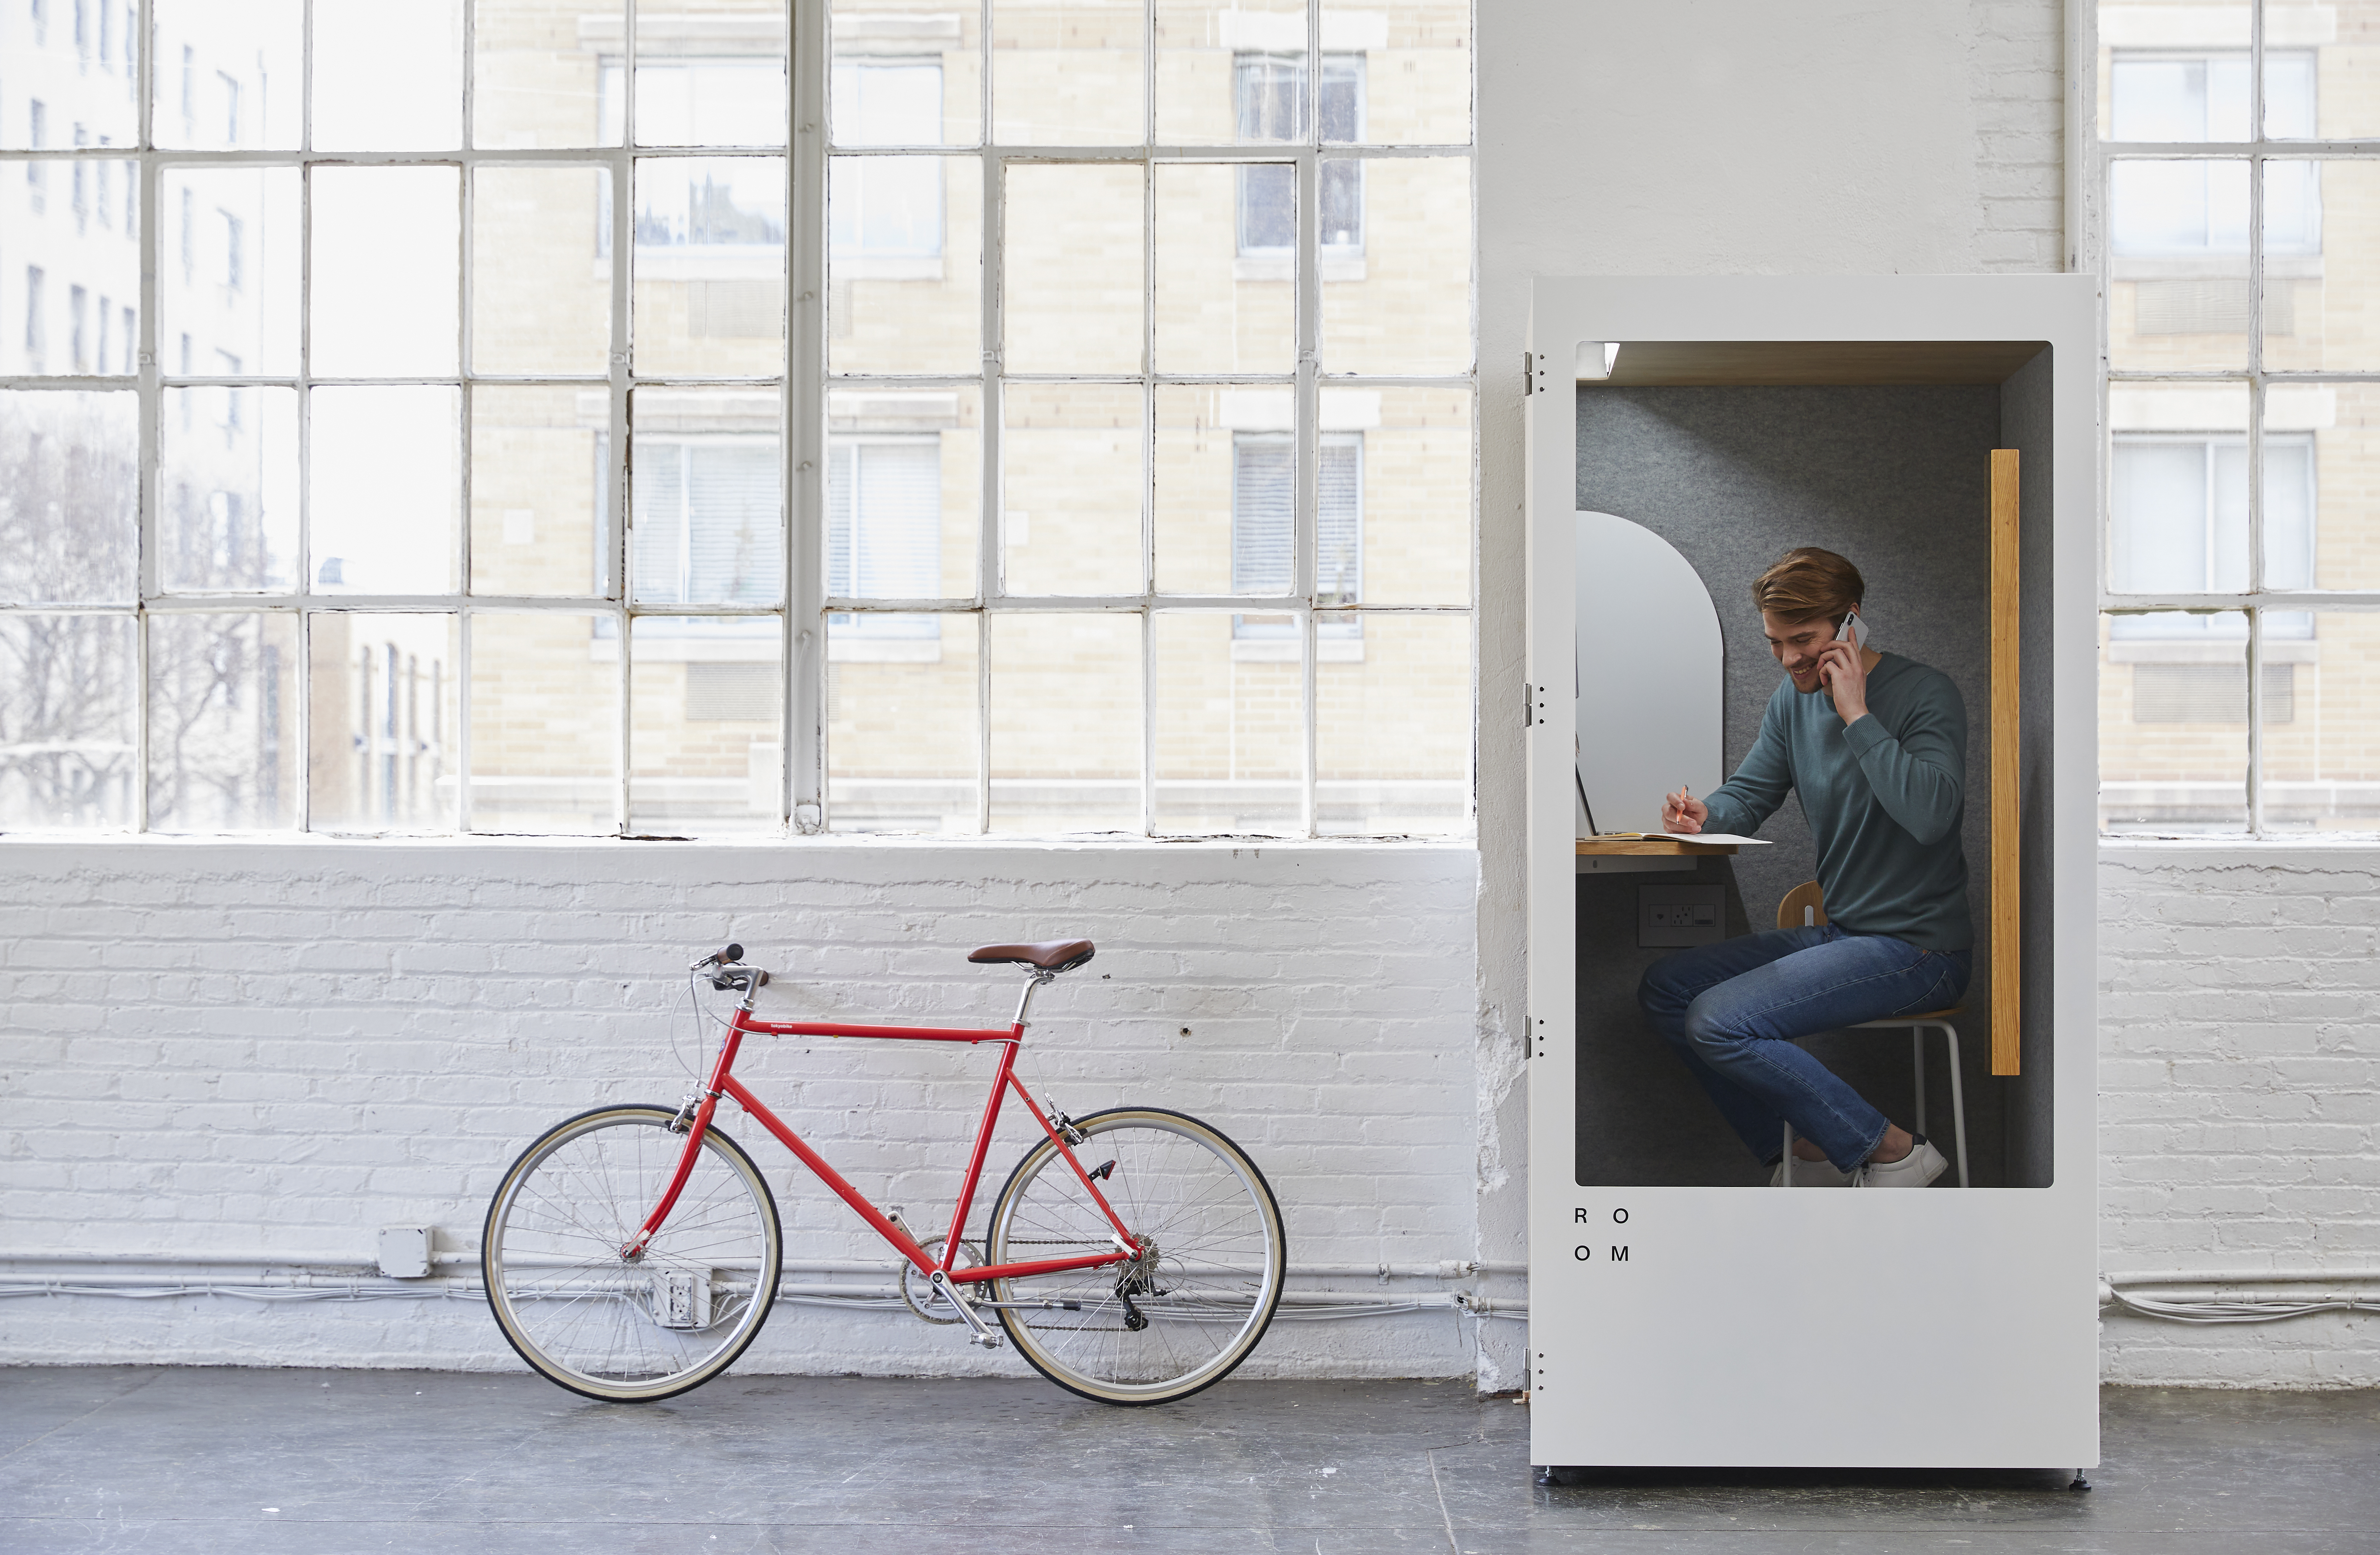 Phonebooth startup Room launches in UK as it dials in to coworking boom